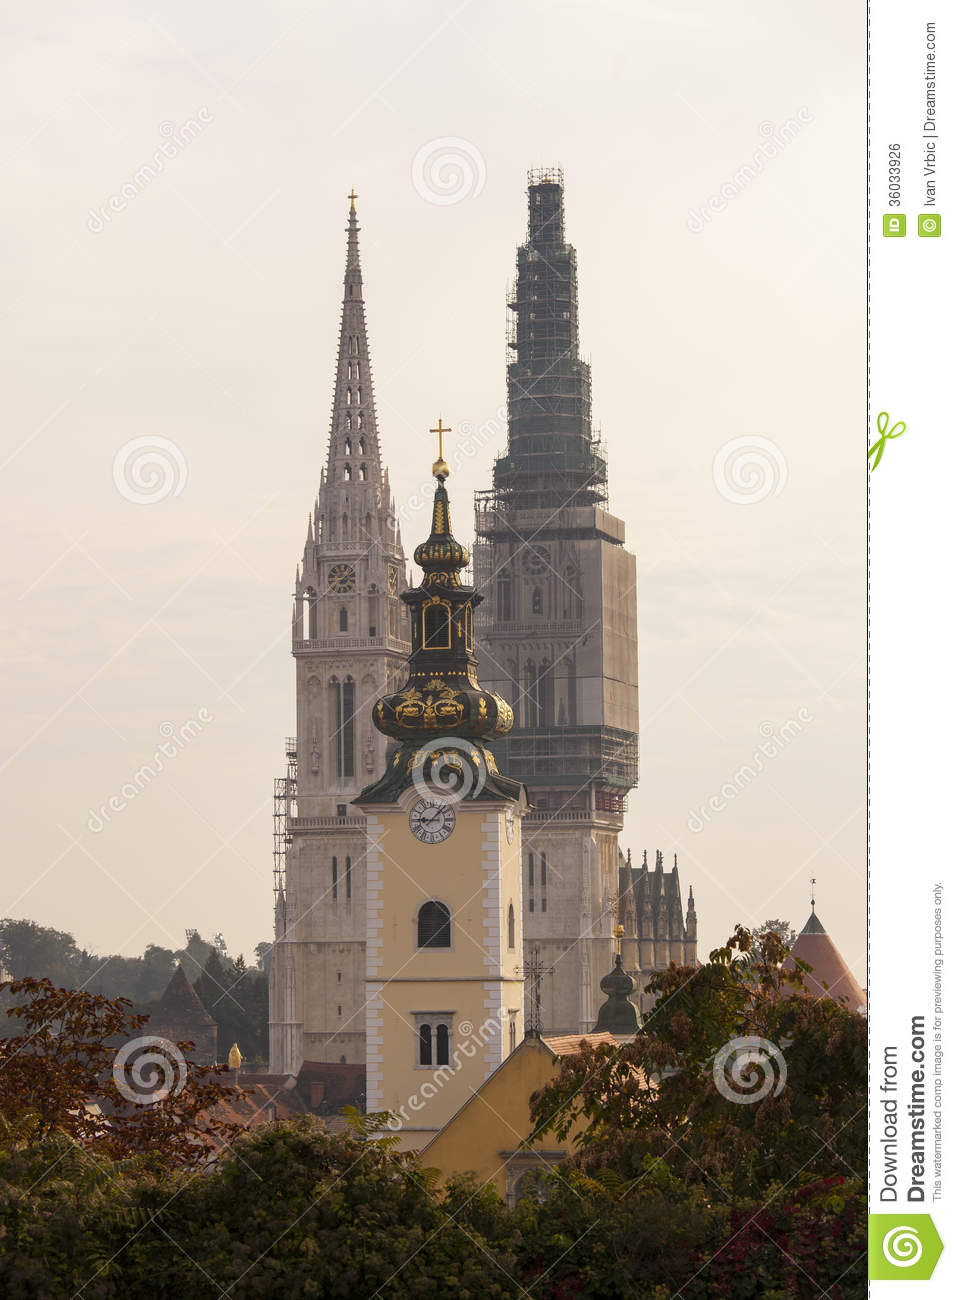 St Mary Church Tower In Between Two Towers Of Zagreb Cathedral Stock Photo Image Of Churches Bell 36033926